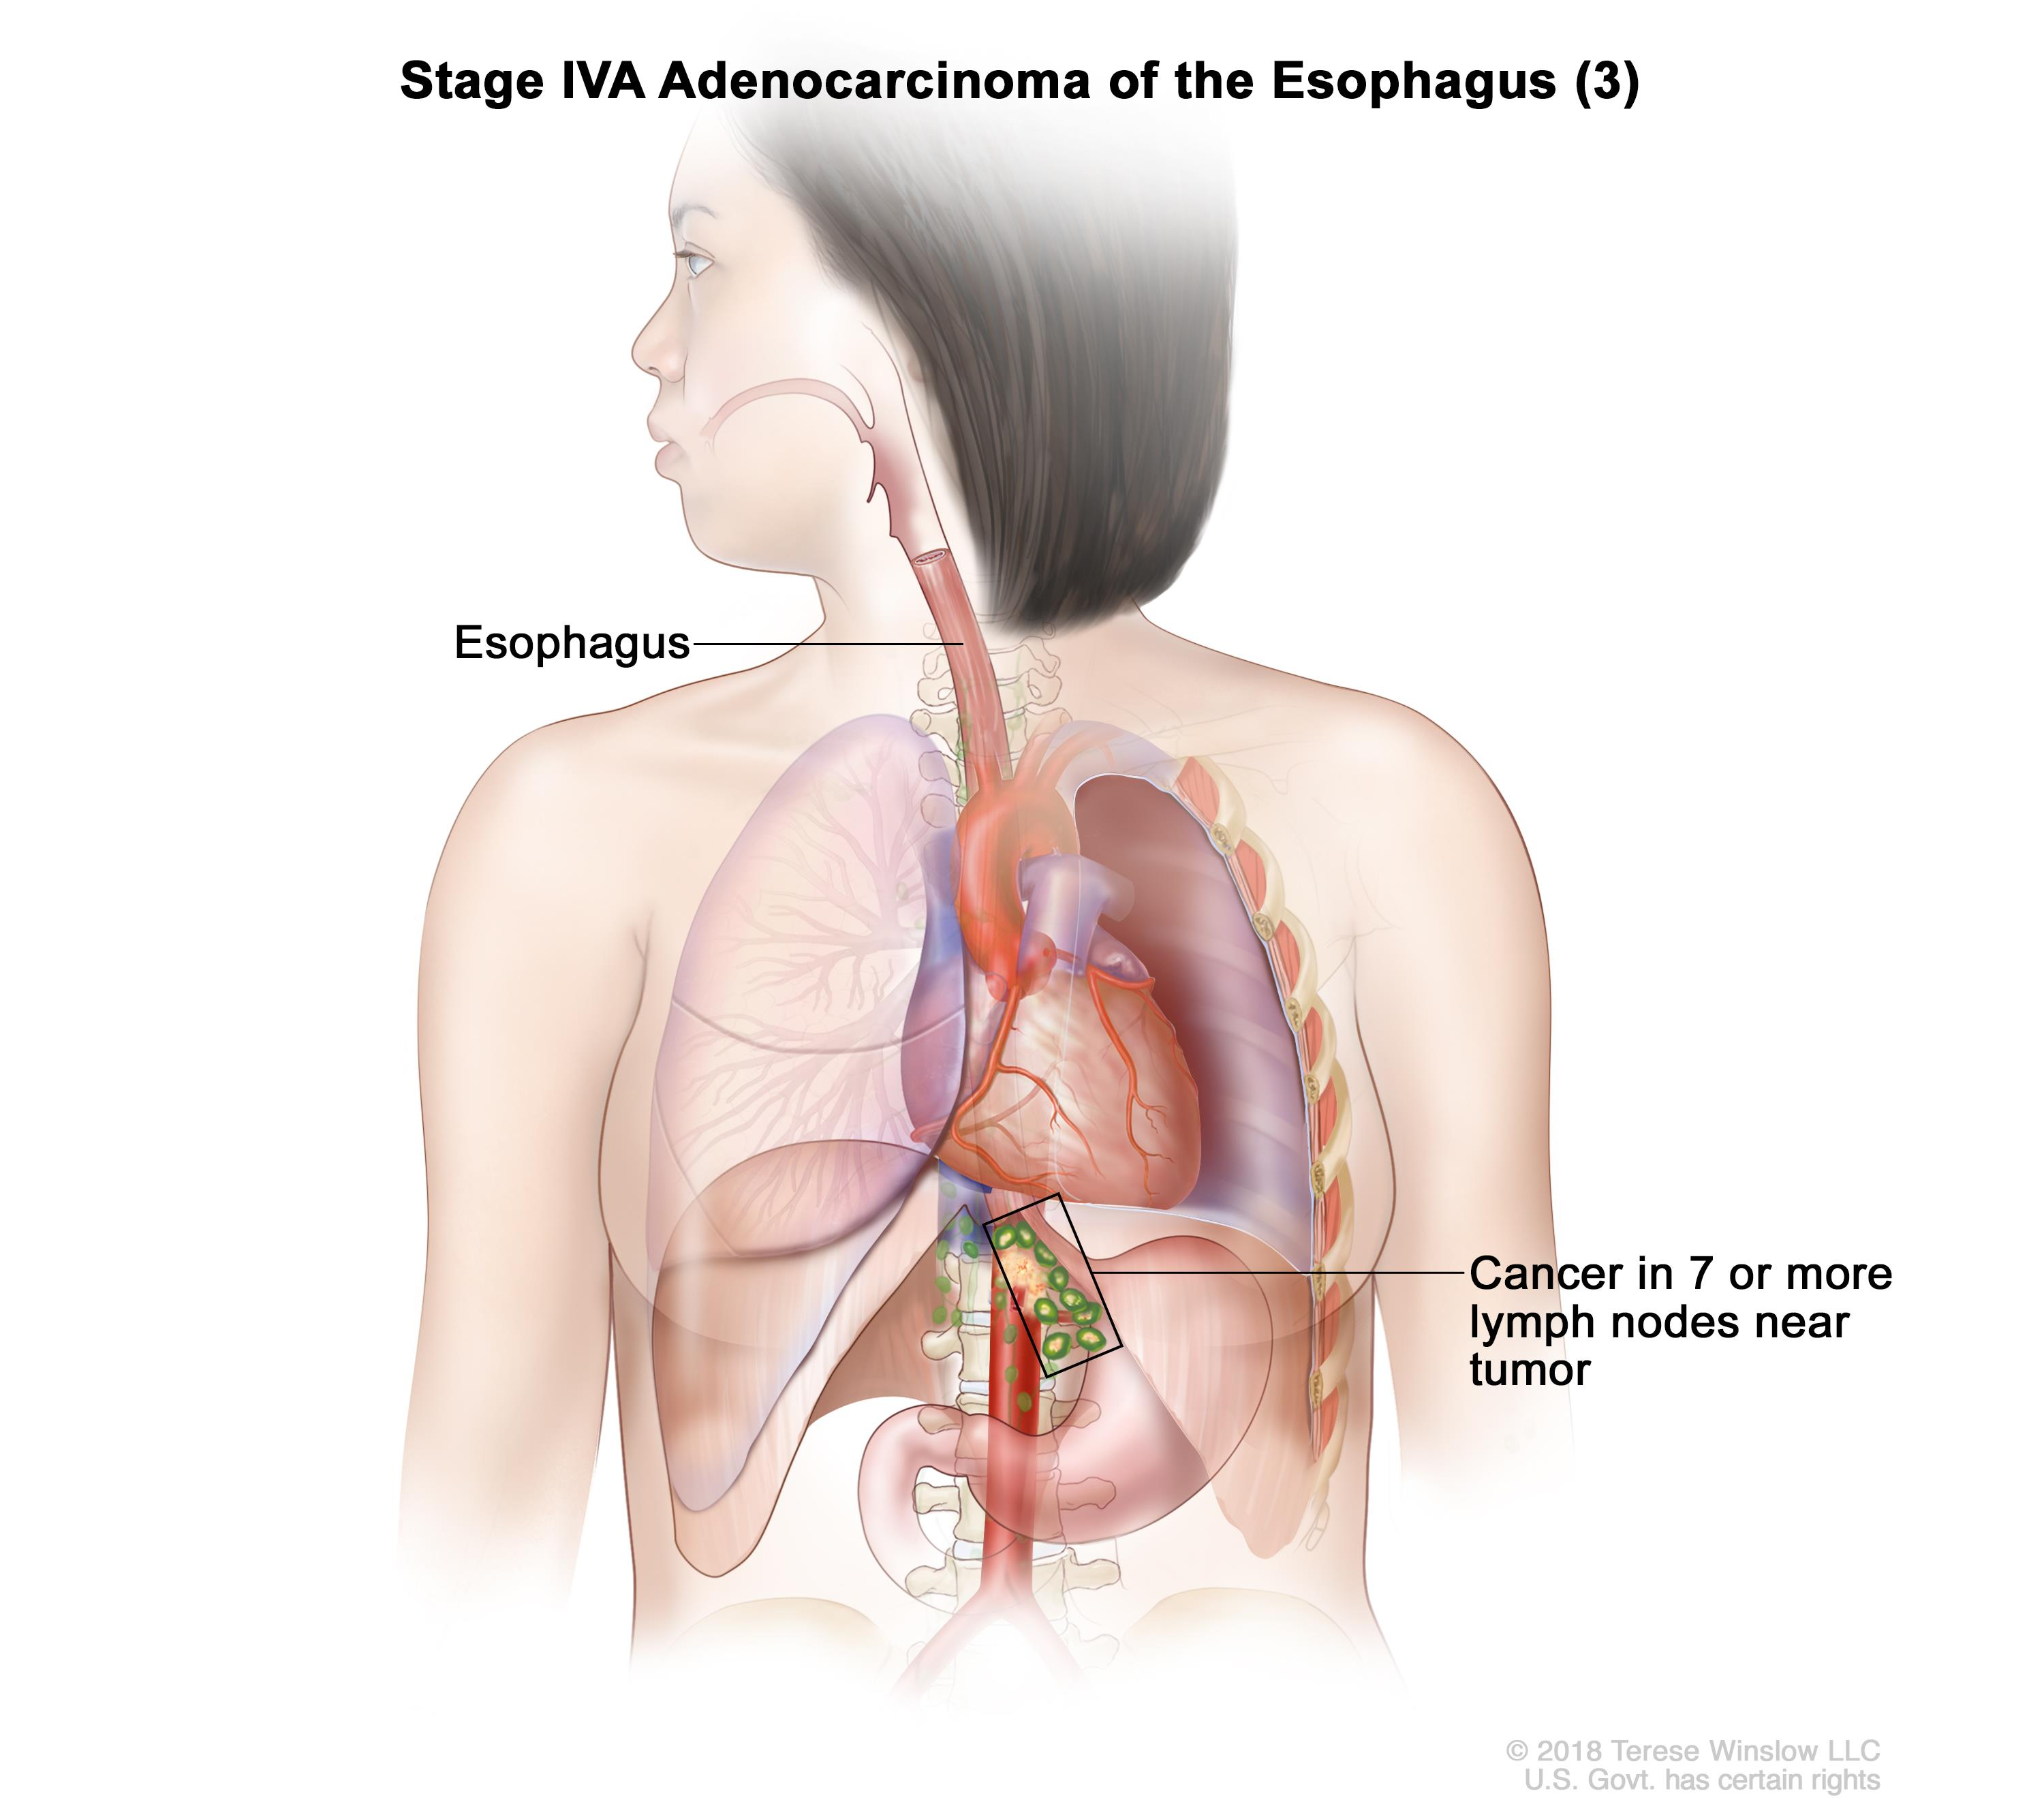 Stage IVA adenocarcinoma of the esophagus (3); drawing shows cancer in the esophagus and in 9 lymph nodes near the tumor.